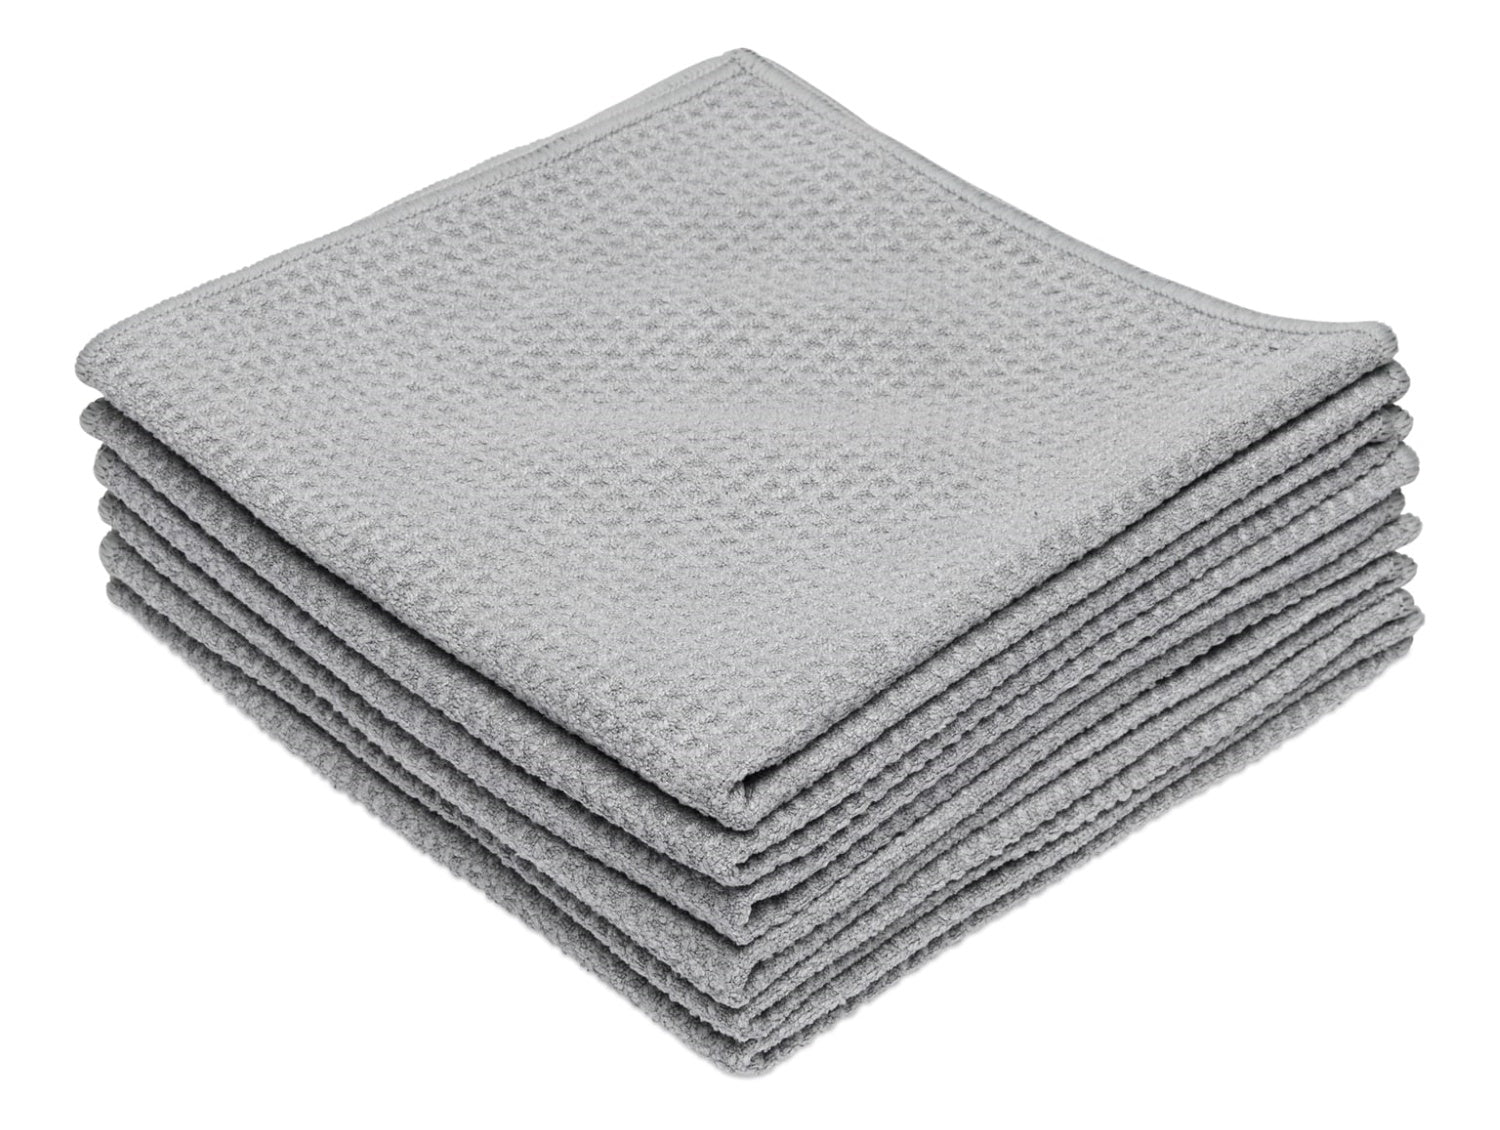 Gray Microfiber Waffle Weave Kitchen Towels